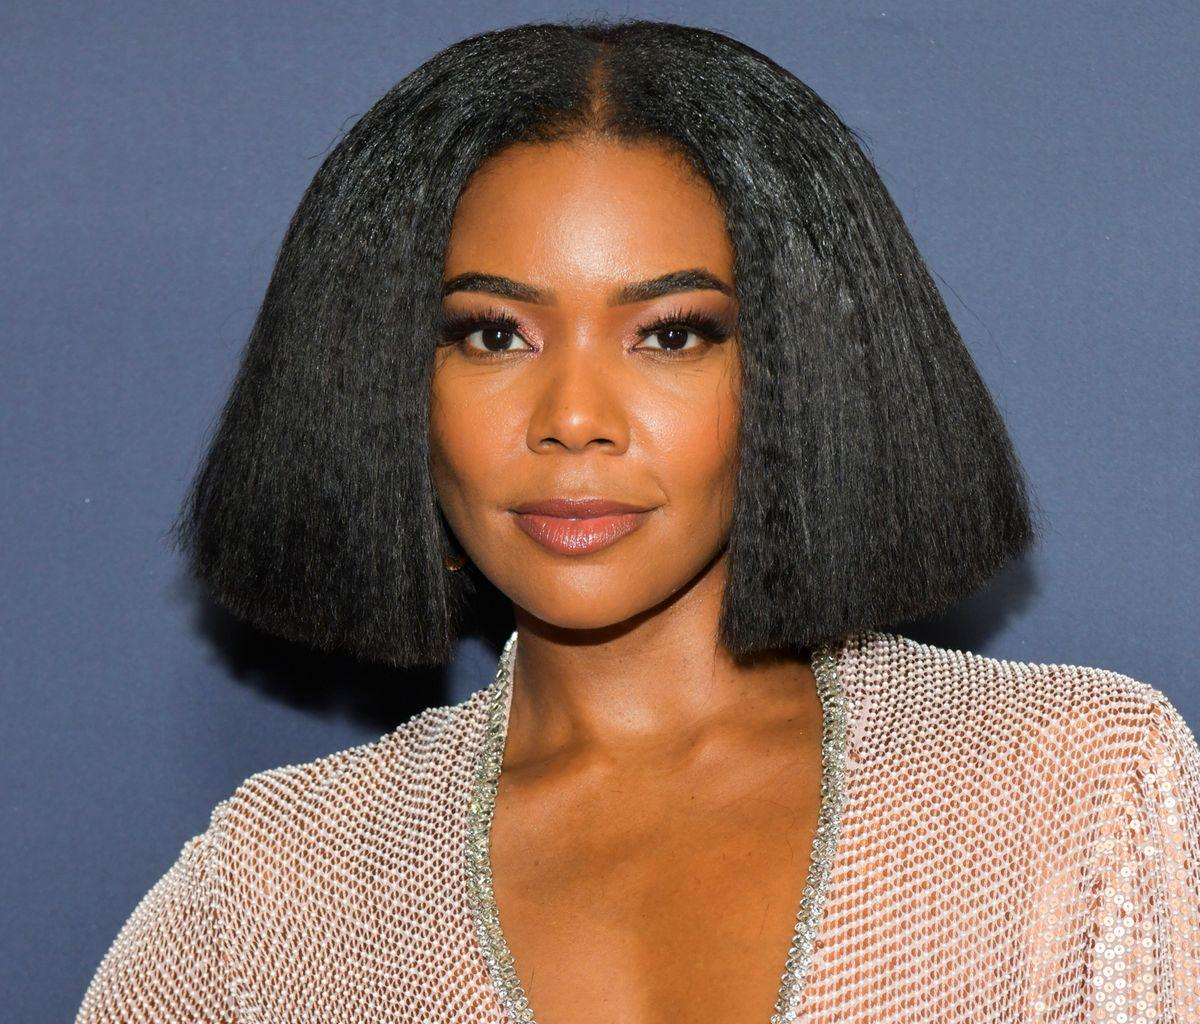 Gabrielle Union Shows Off Her Essentials For A Self Care Sunday